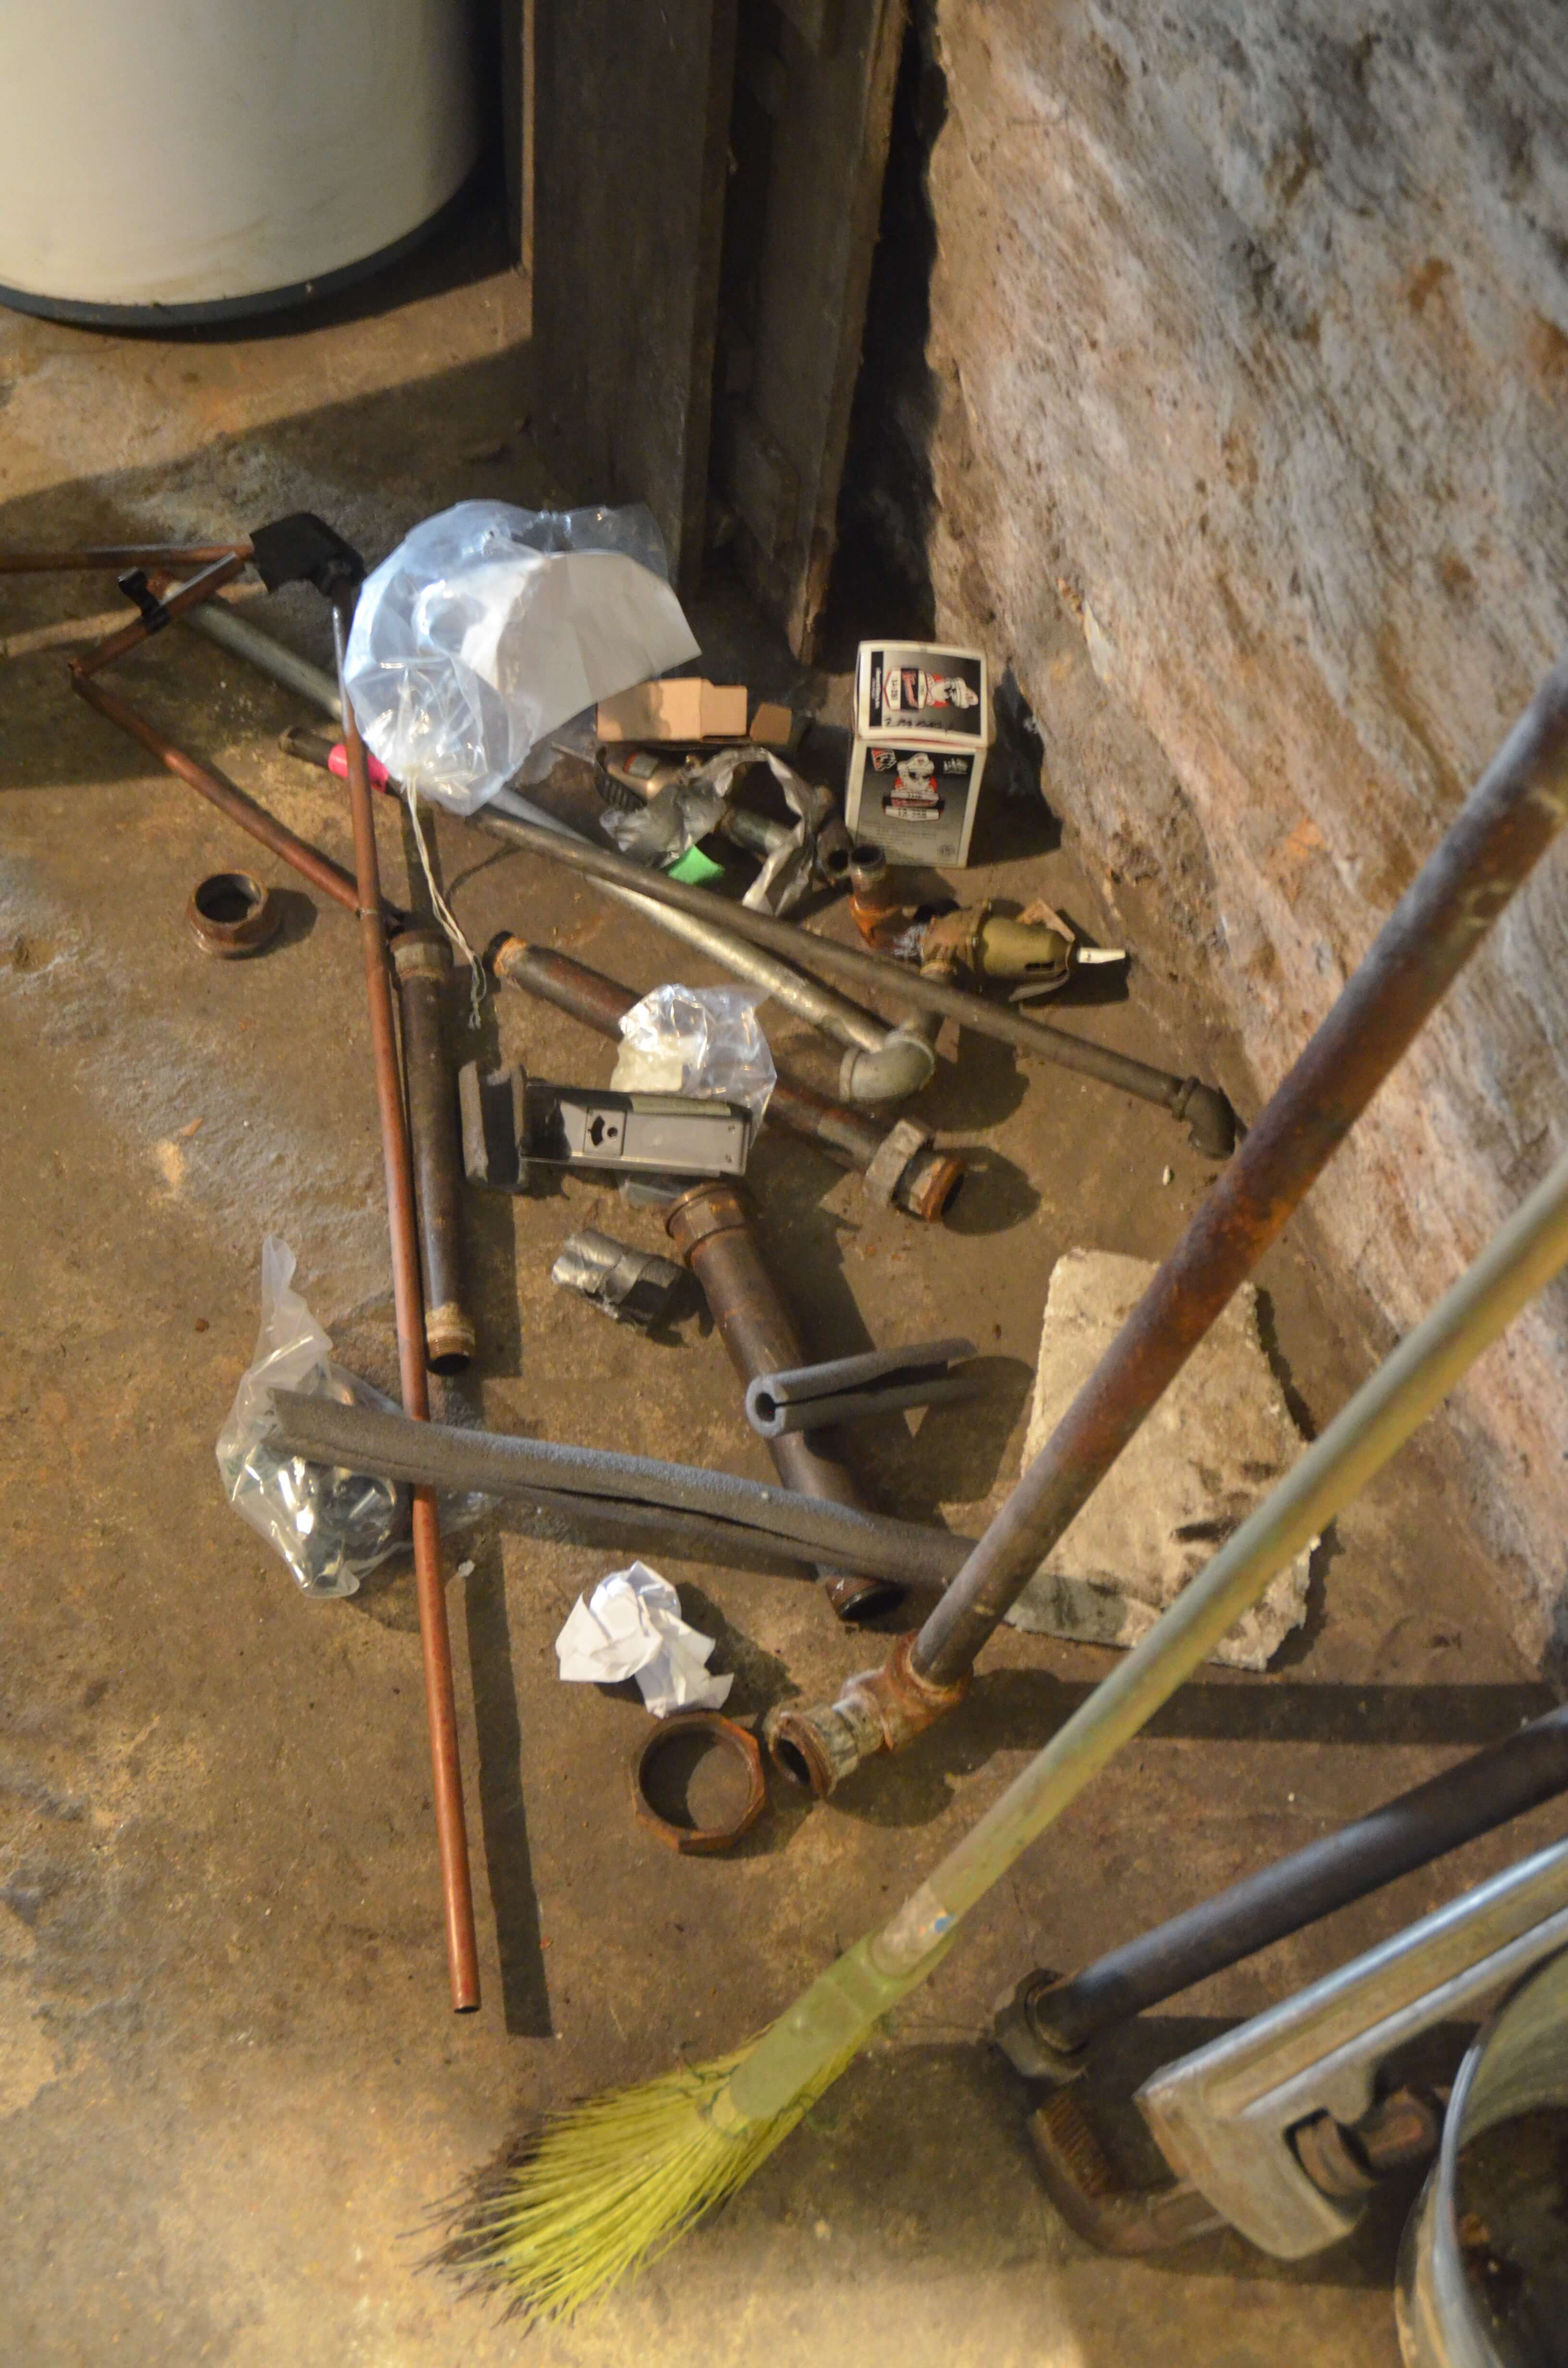 Plumbing parts litter the basement as the new boiler is installed!